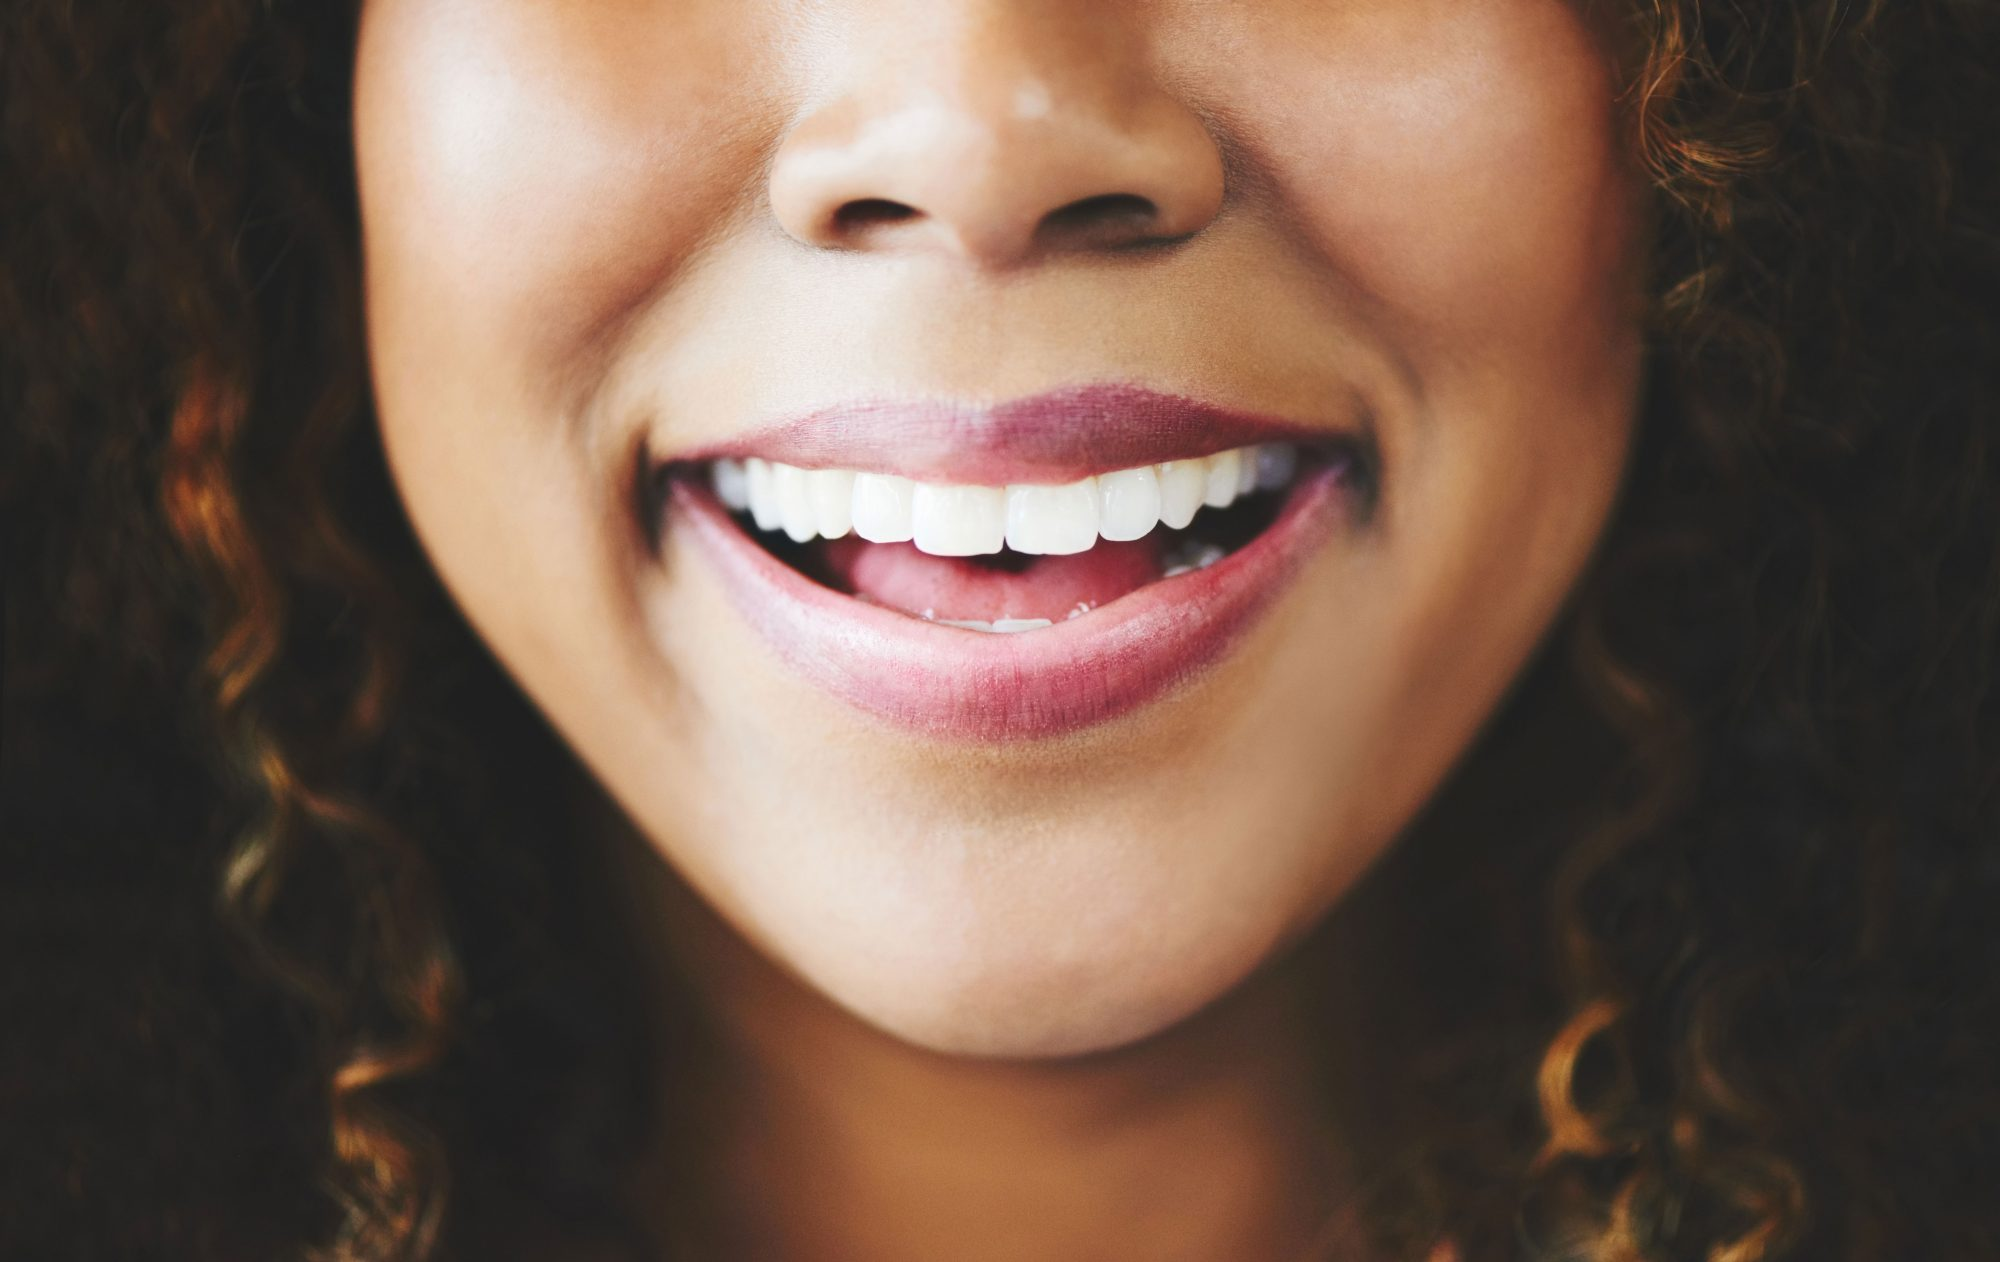 Woman Smiling with Pink Lipstick